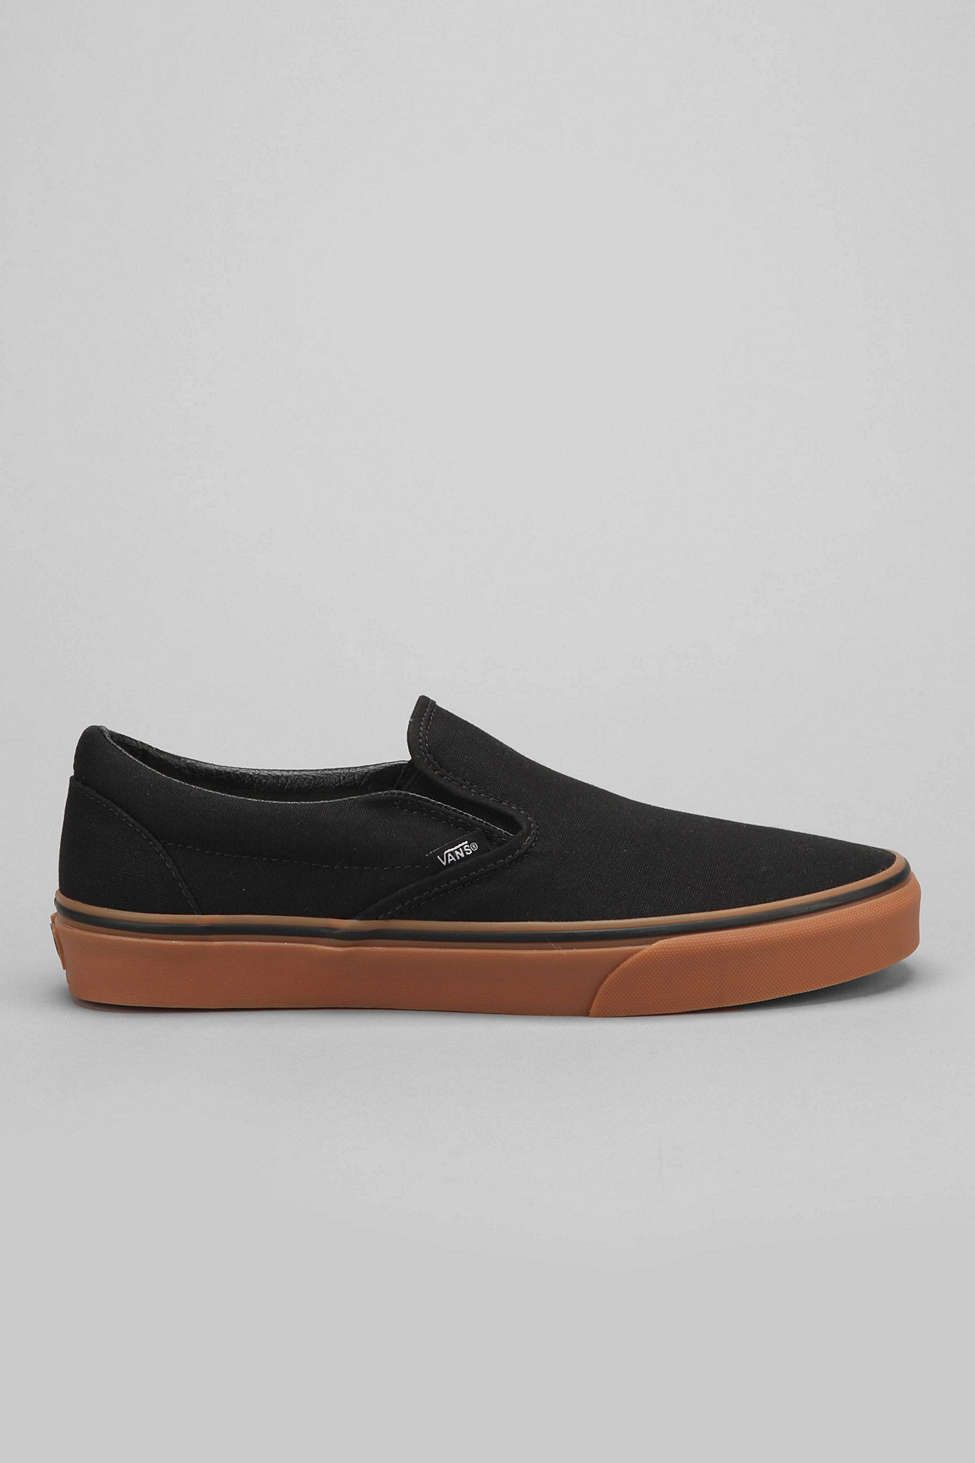 dcc9e96ec2 Vans Classic Gum-Sole Slip-On Men s Sneaker